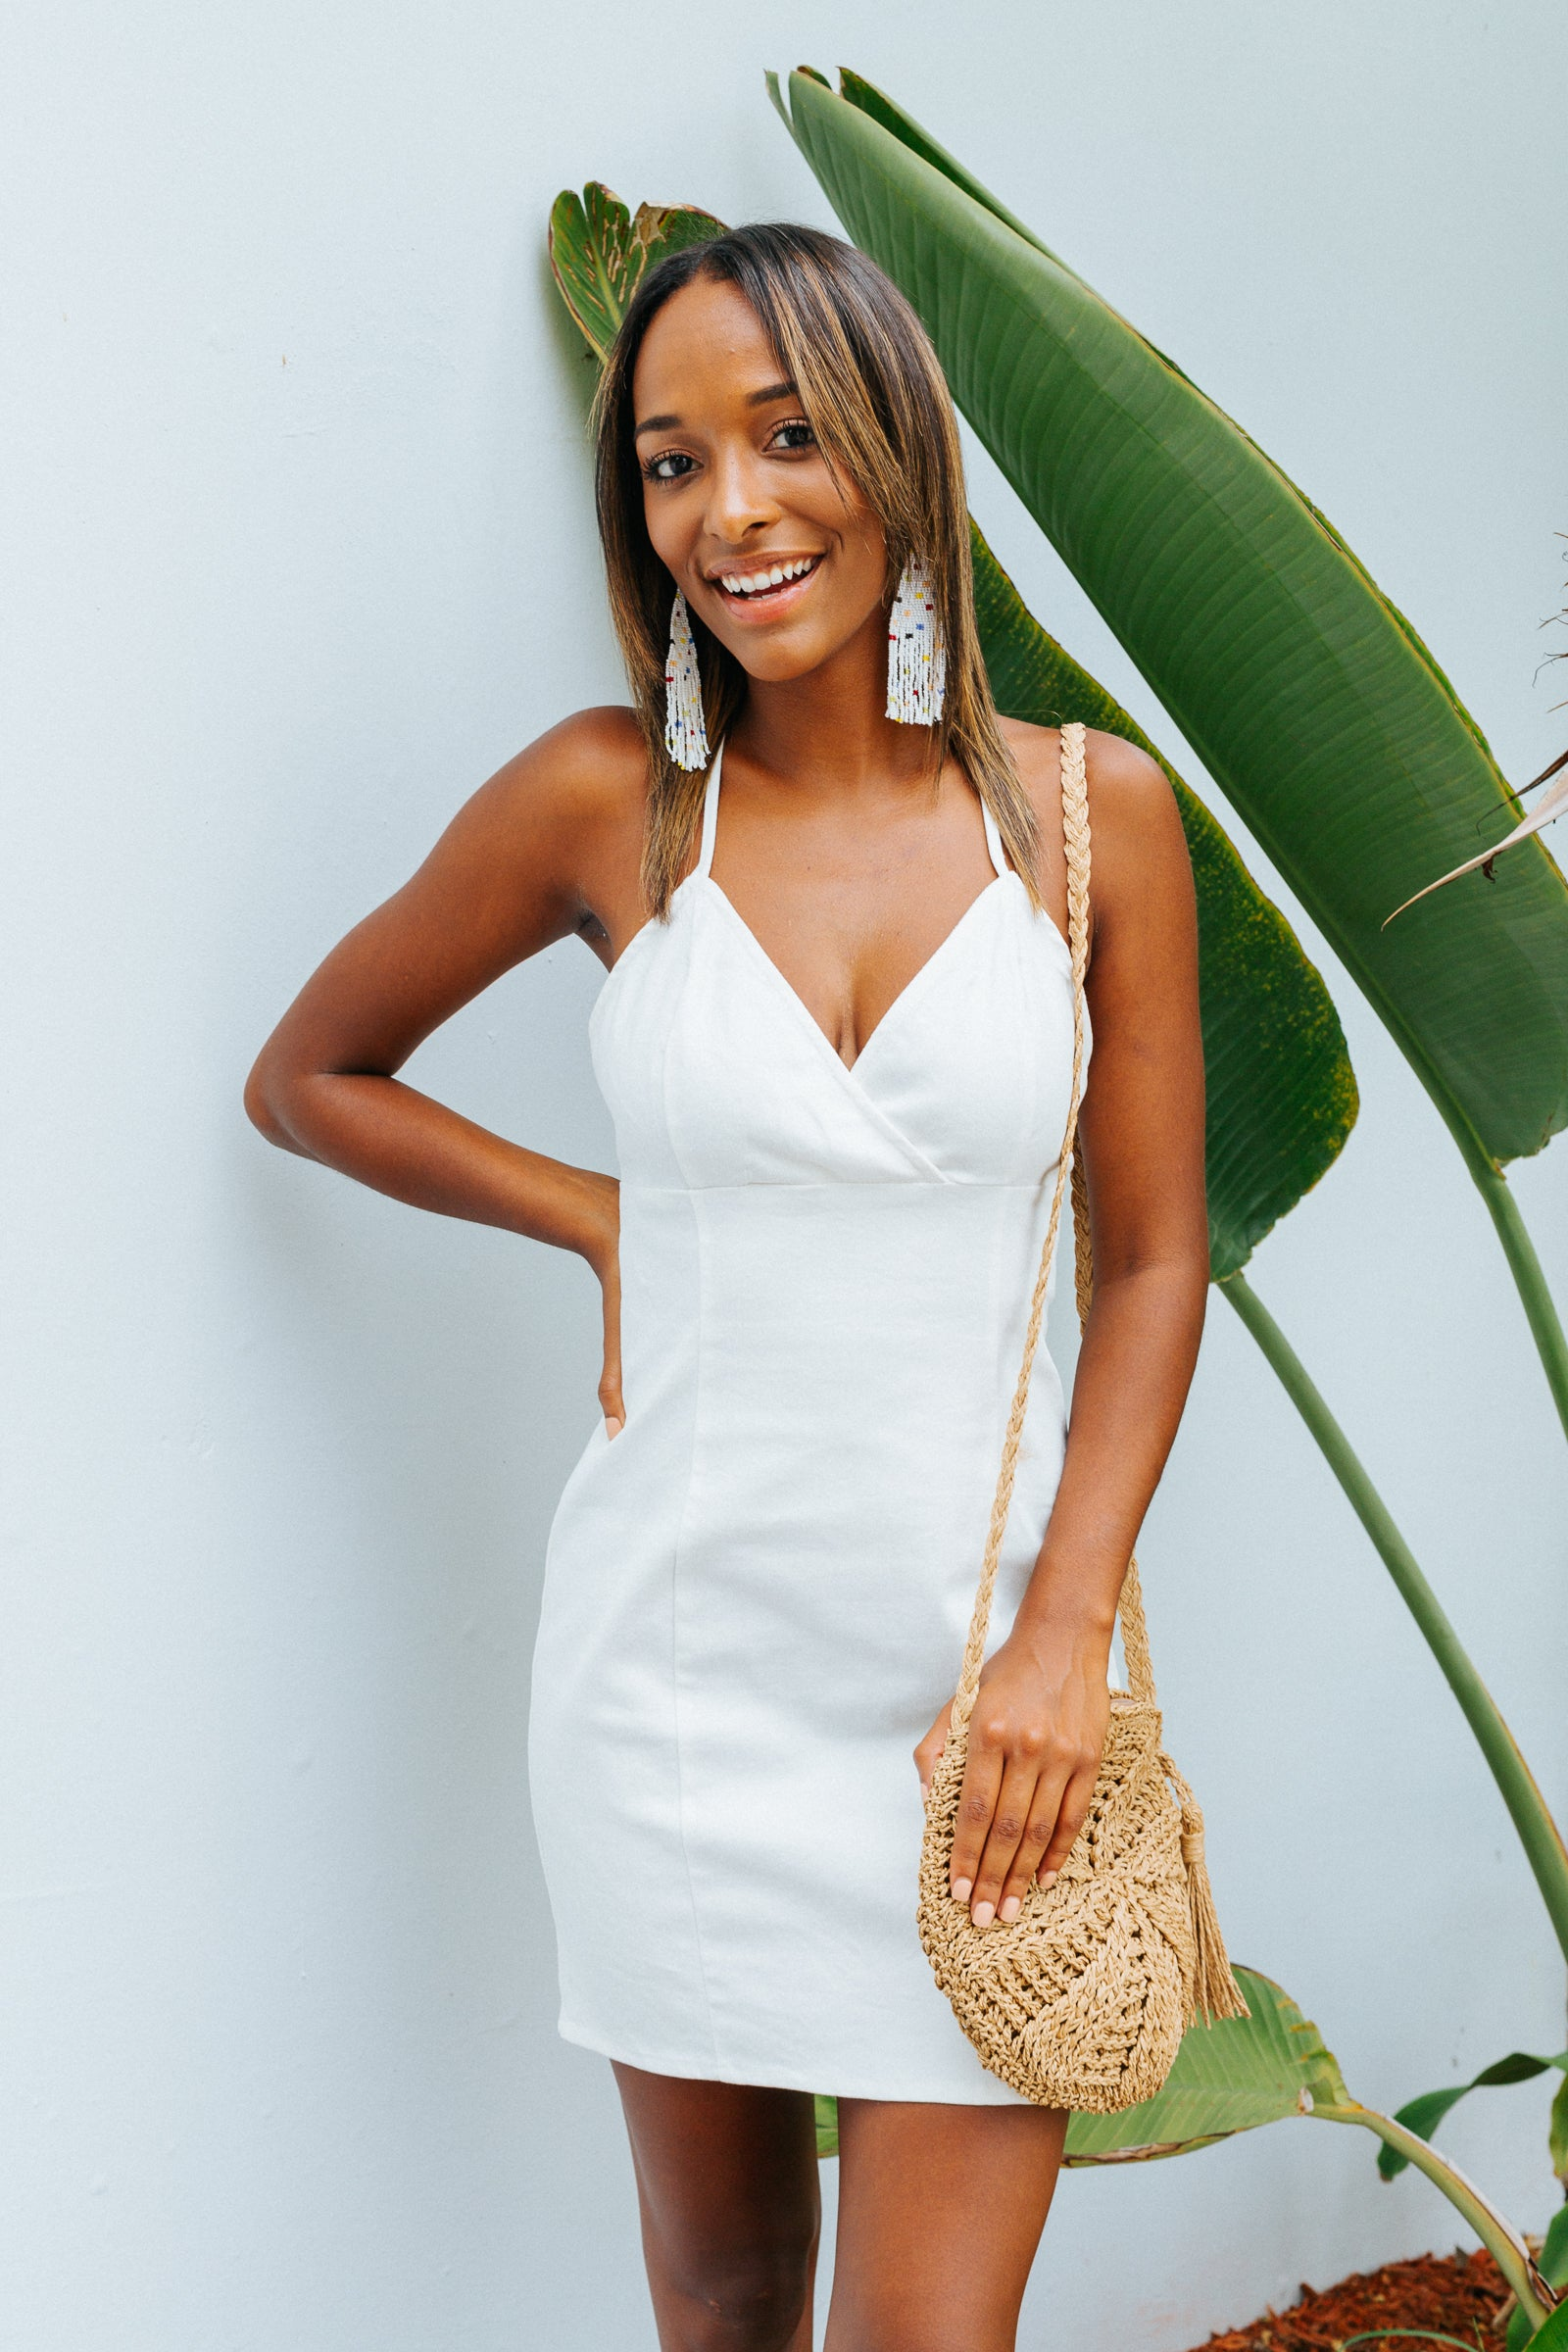 This chic white mini dress has thin straps that attach to a surplice neckline on a darted bodice and meets a body and hip-hugging dress silhouette.